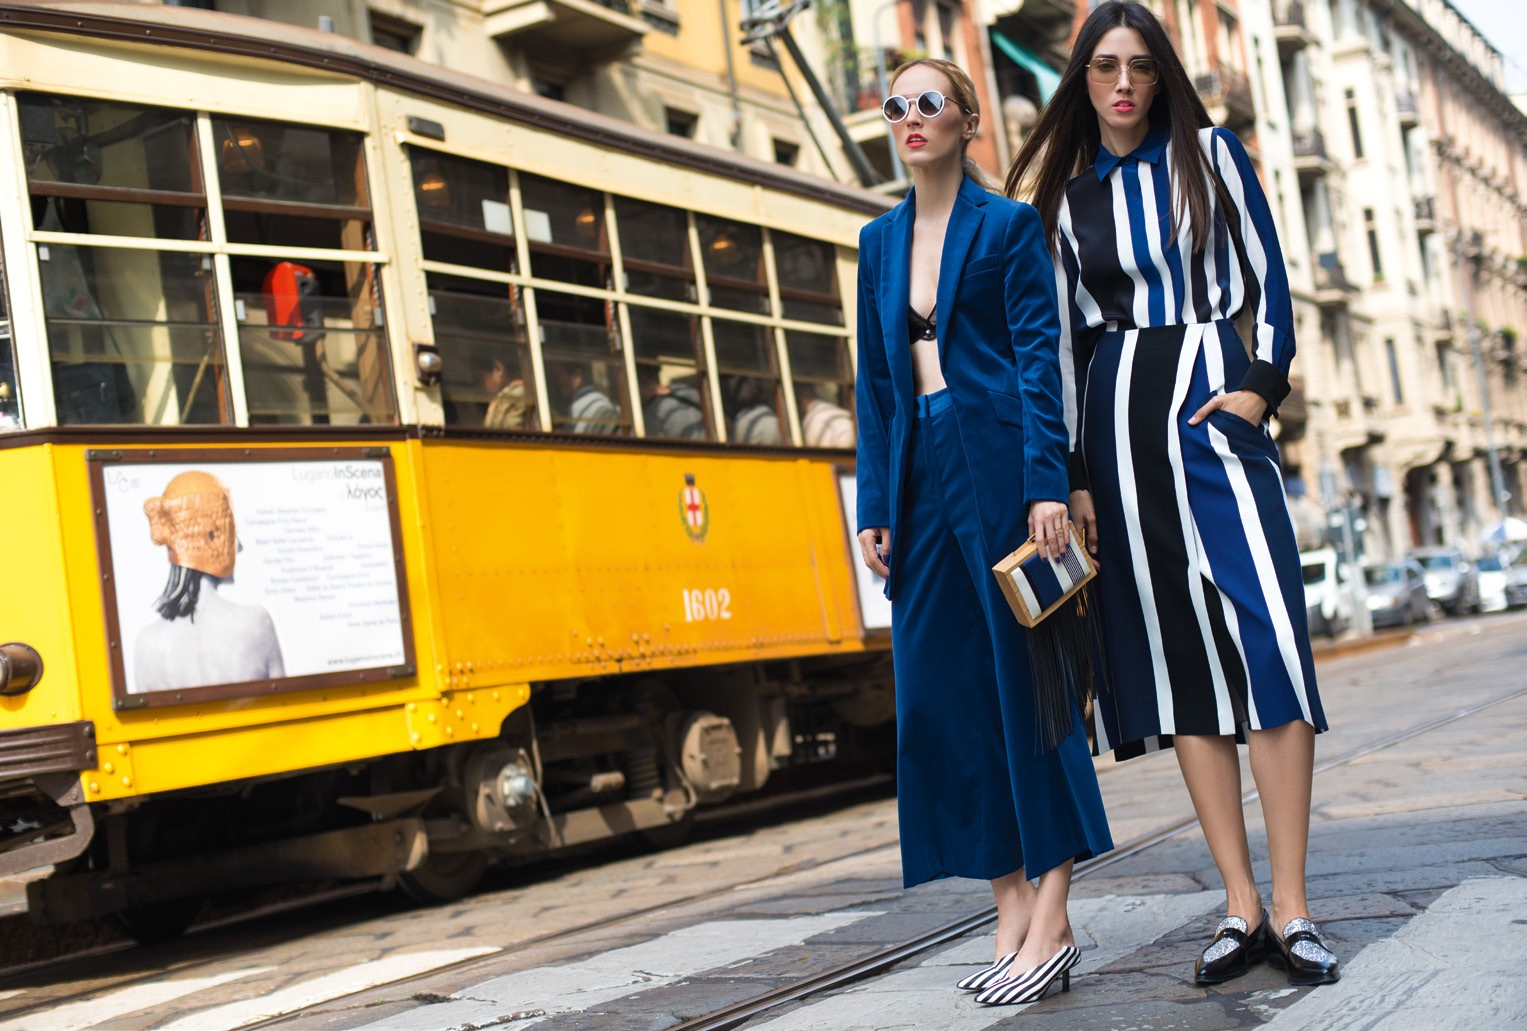 0fabulous_muses_unica_streetstyle_milan_fashion_week